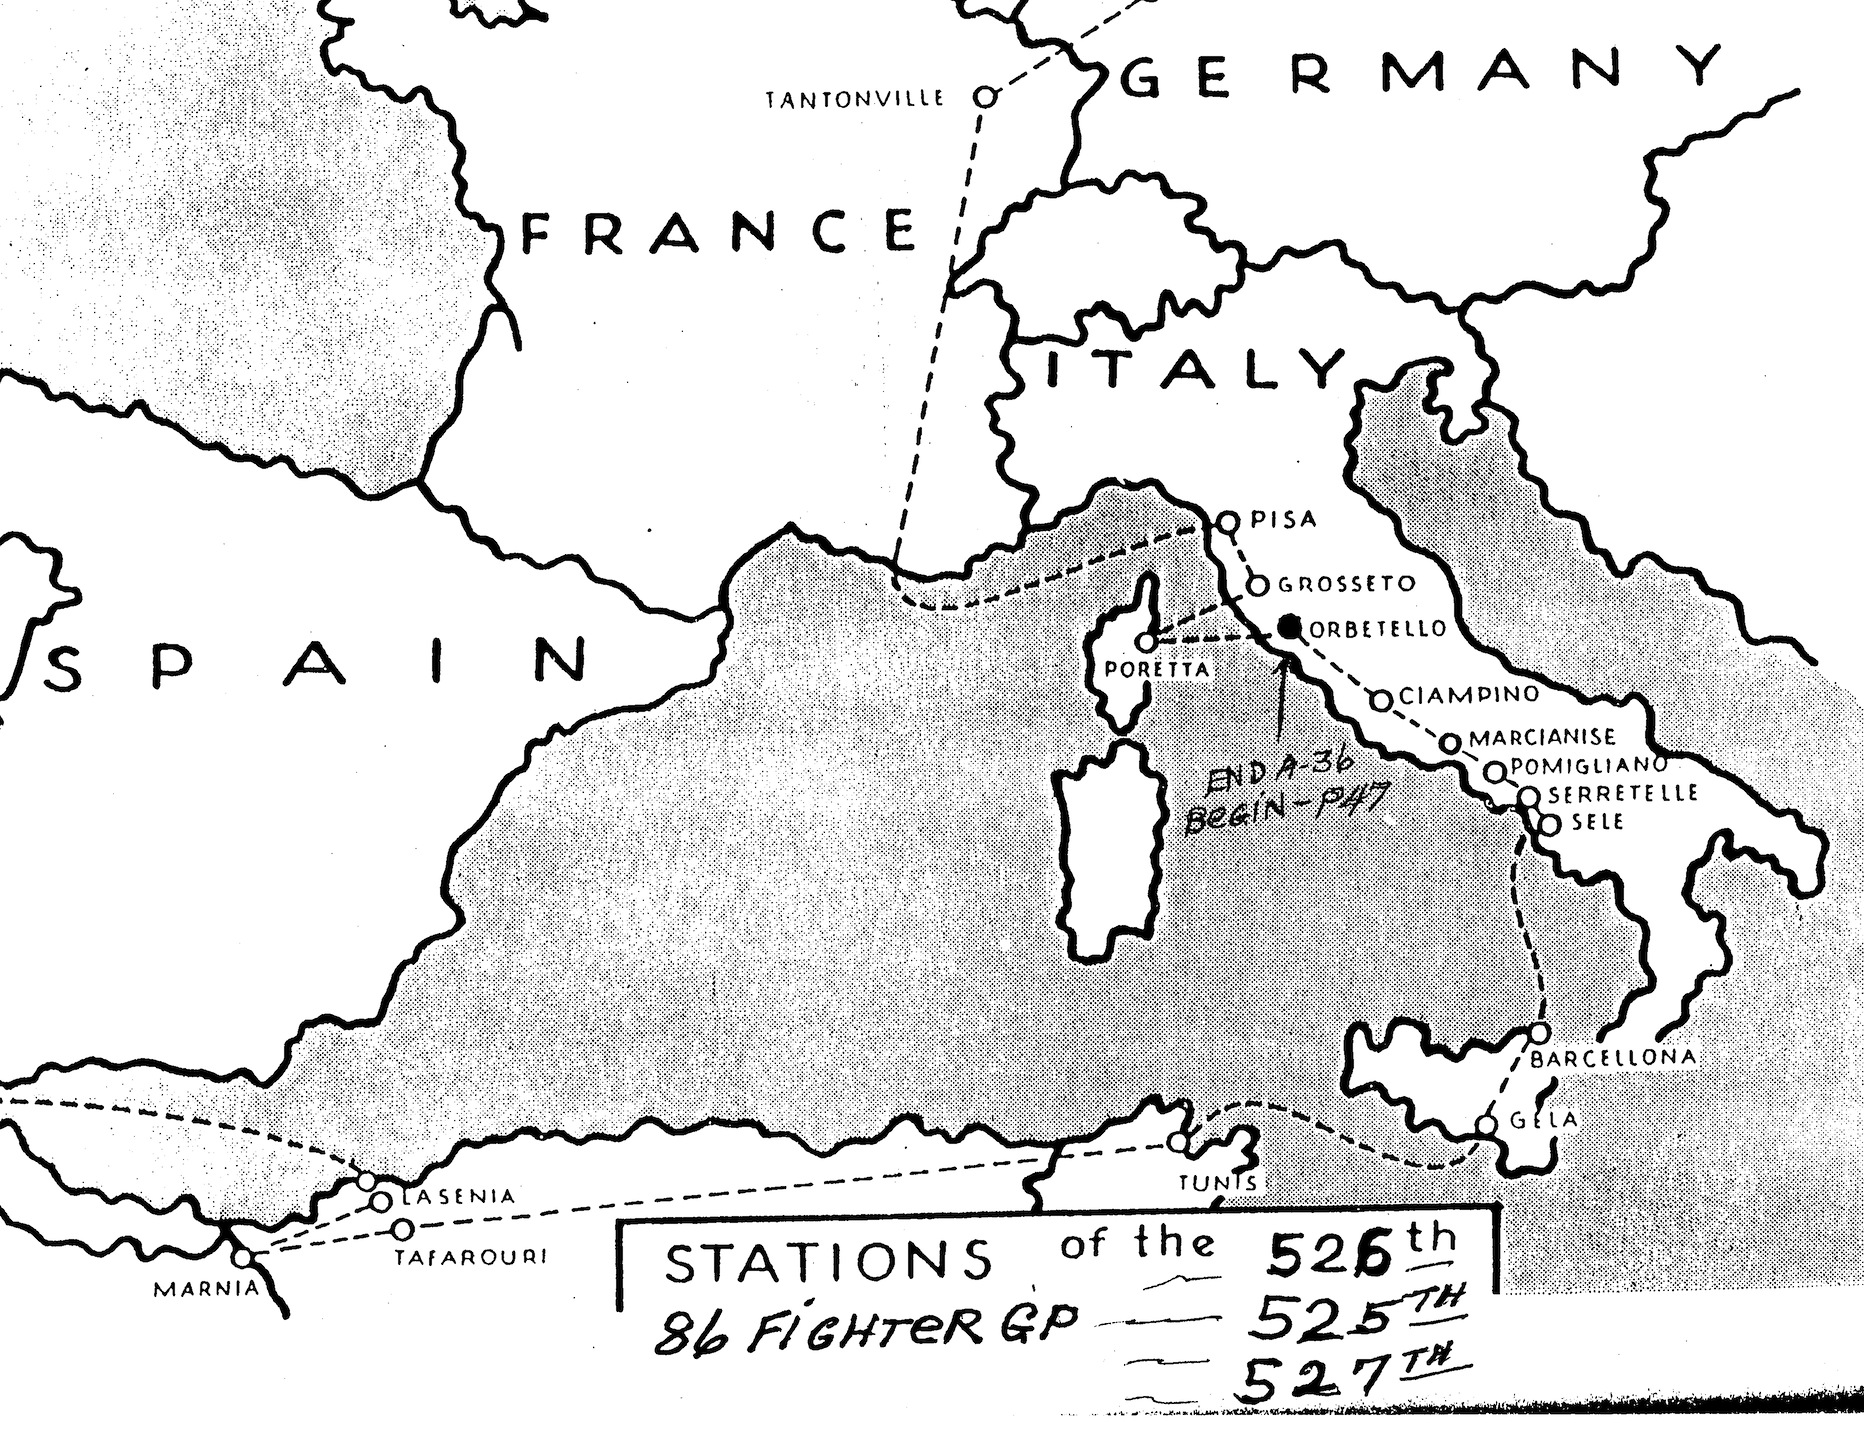 <p class='eng'>Stations of the 86th Fighter Bomber Group.</p>